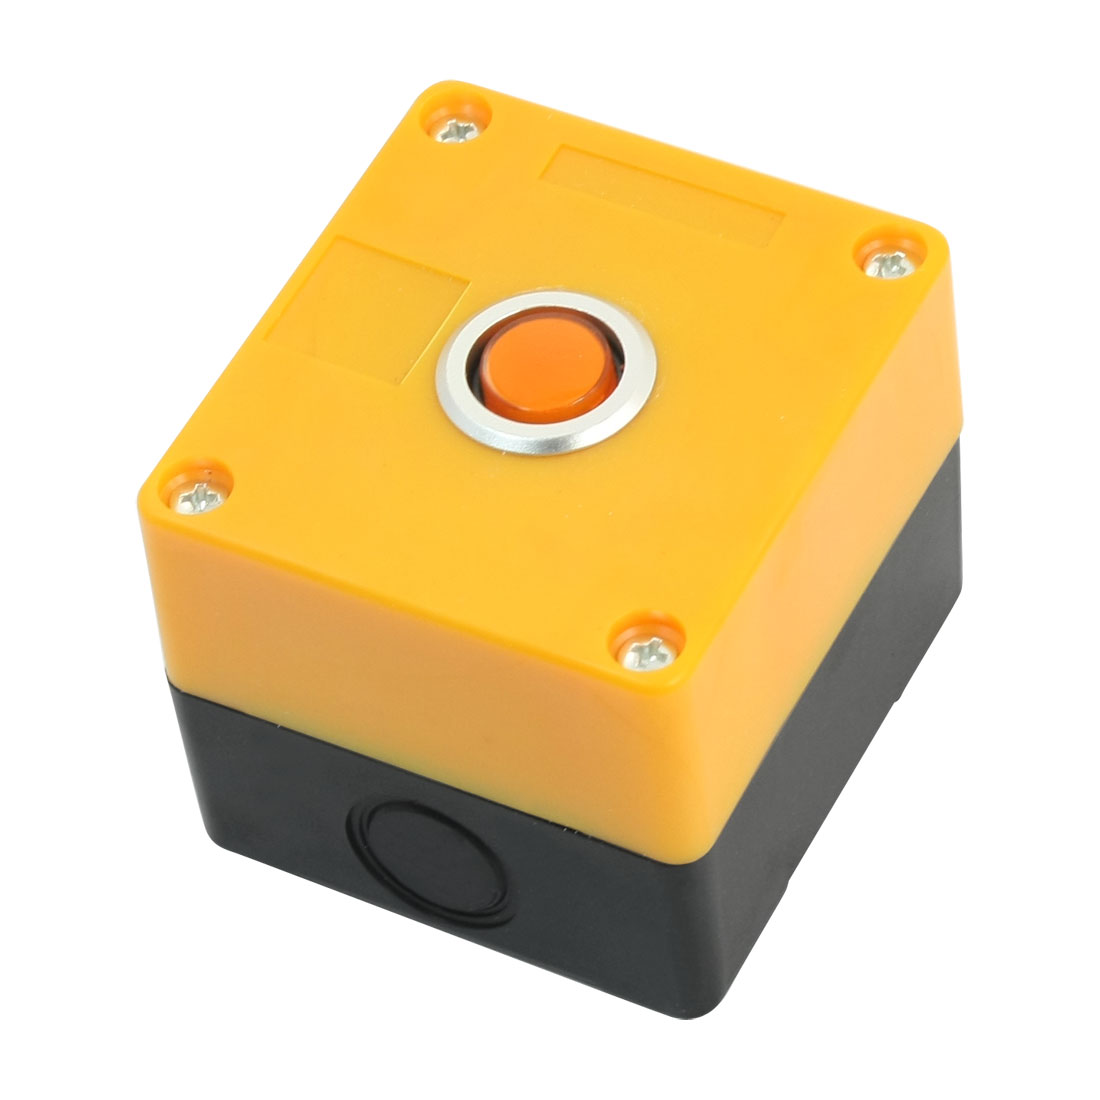 AC220V 5A SPDT 1NO 1NC 5Pin Momentary Action Orange Light Rectangle Yellow Plastic Case Push Button Control Station Box